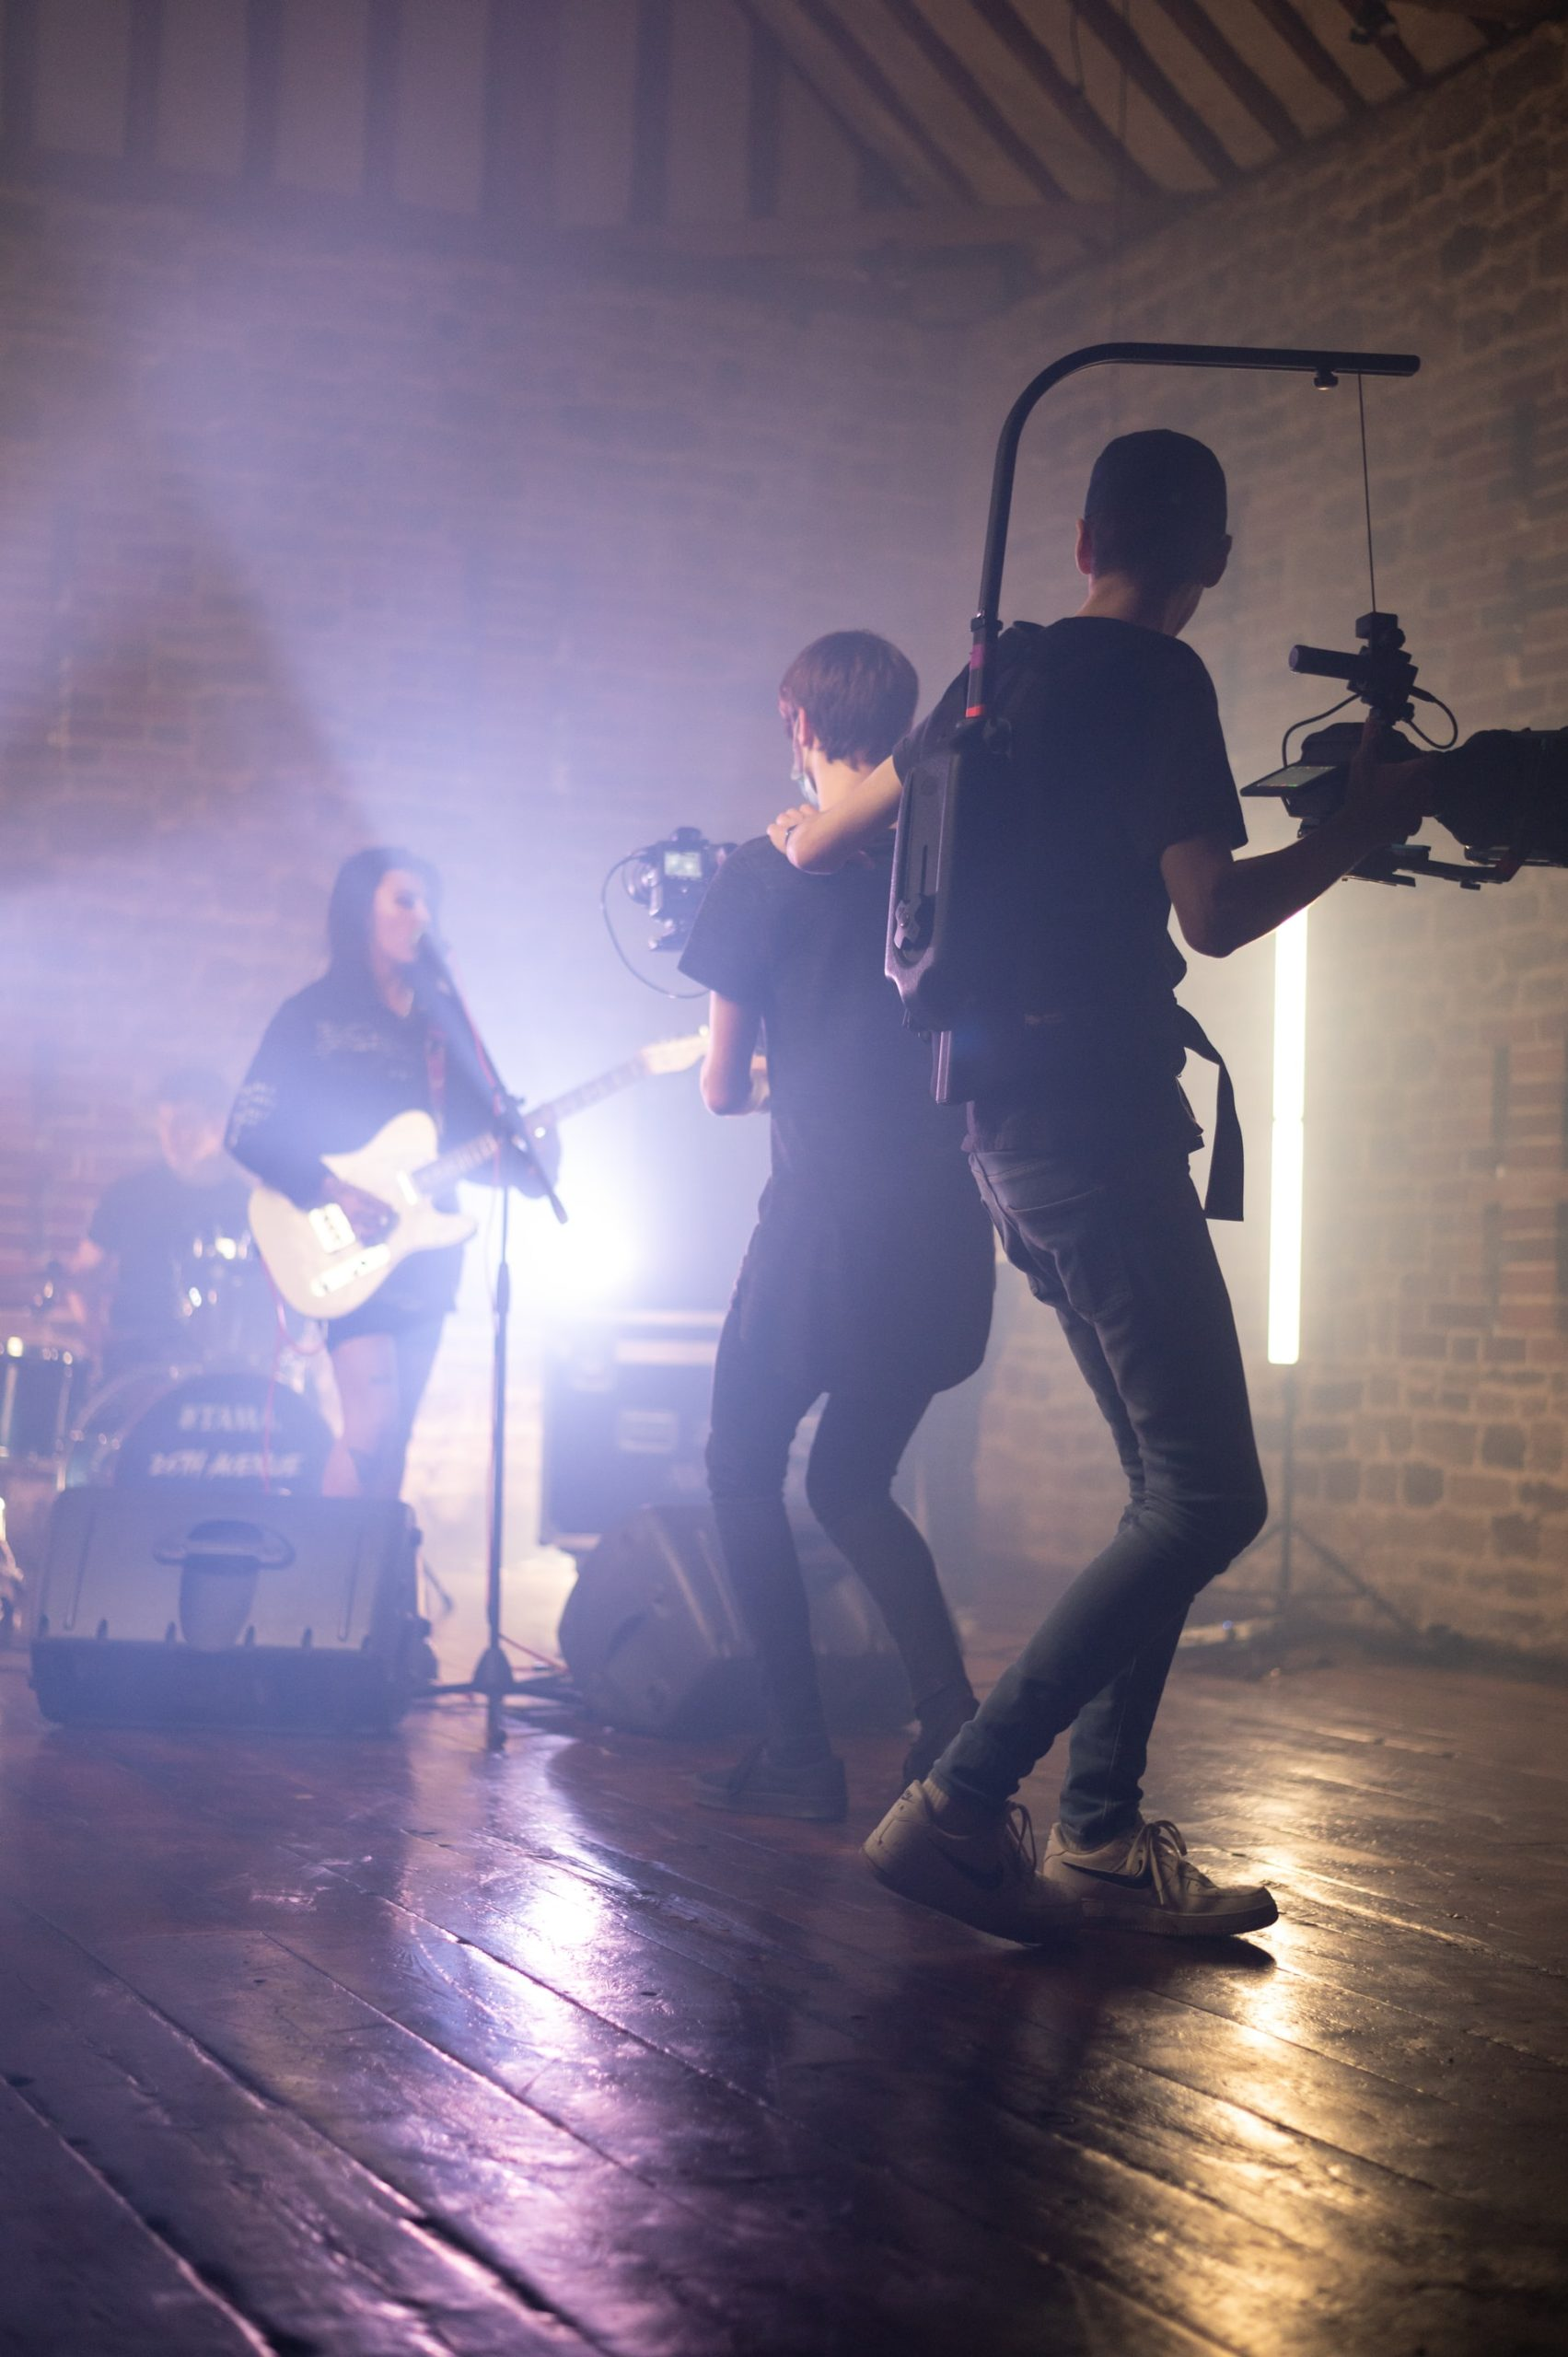 Market Music Video Article Image